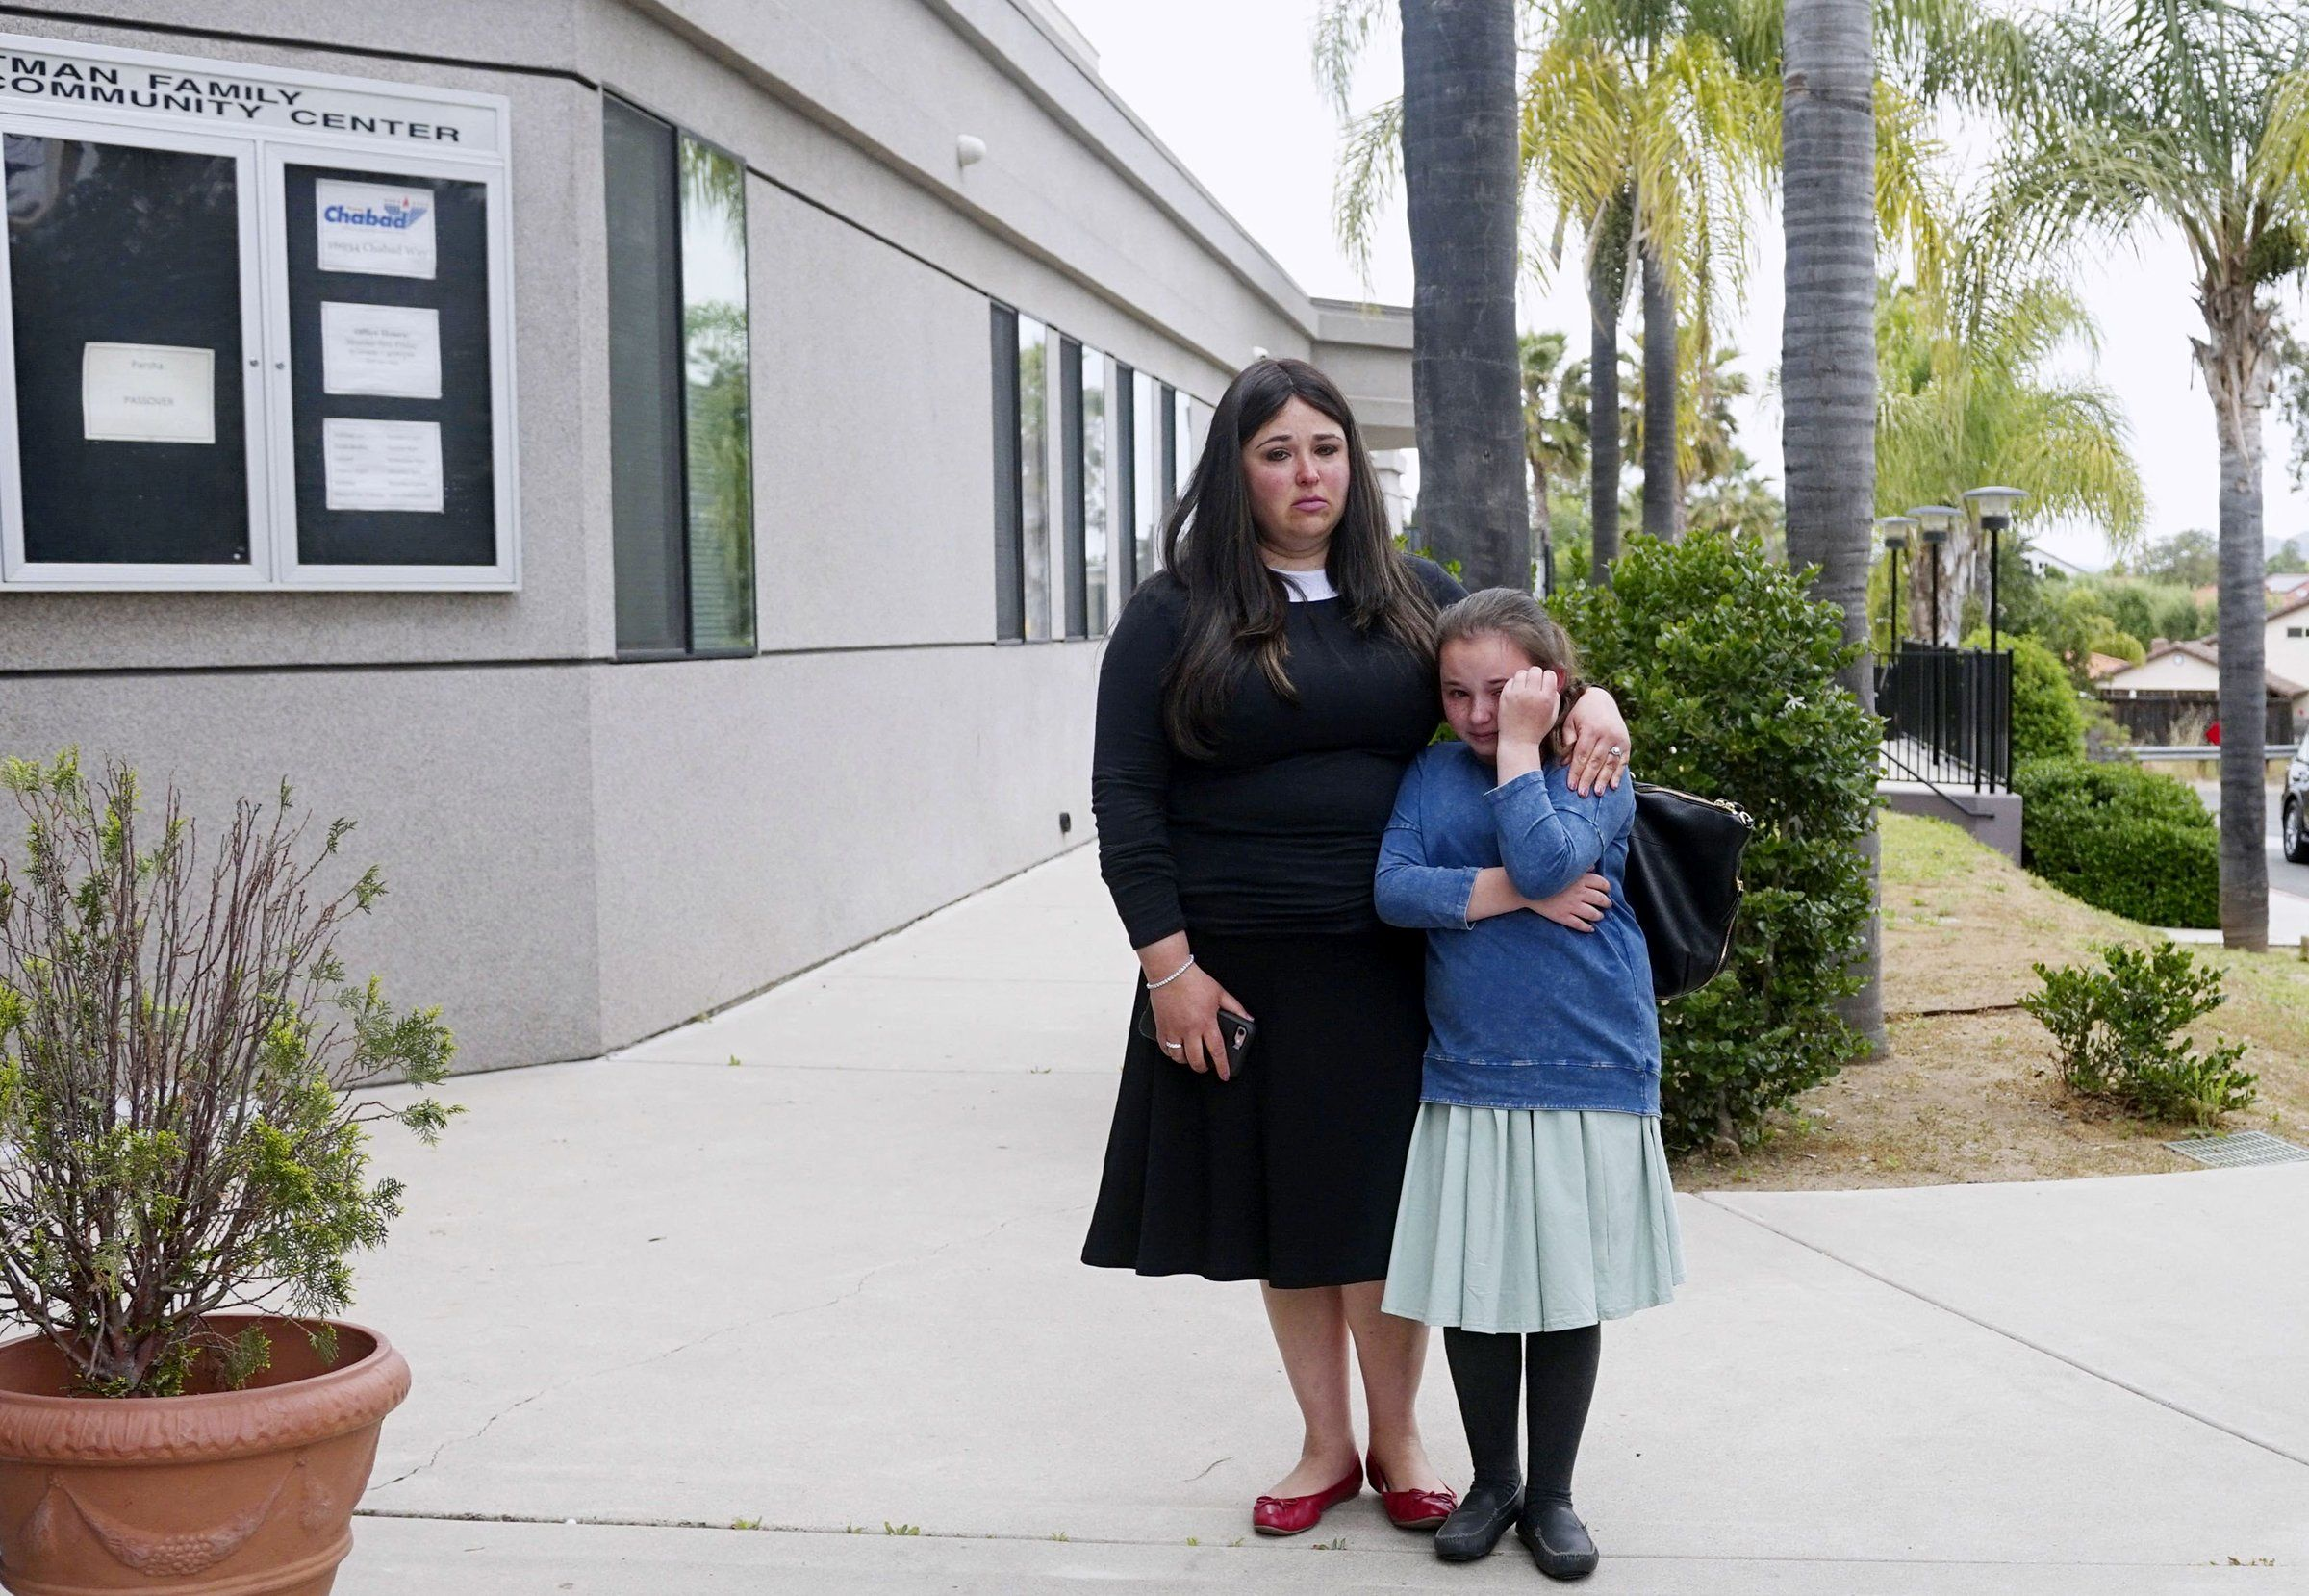 A woman and a young girl, congregants of the Chabad of Poway Synagogue, weep during a news conference on April 28. One person was killed and three people, including a rabbi, were injured at a shooting there a day earlier.